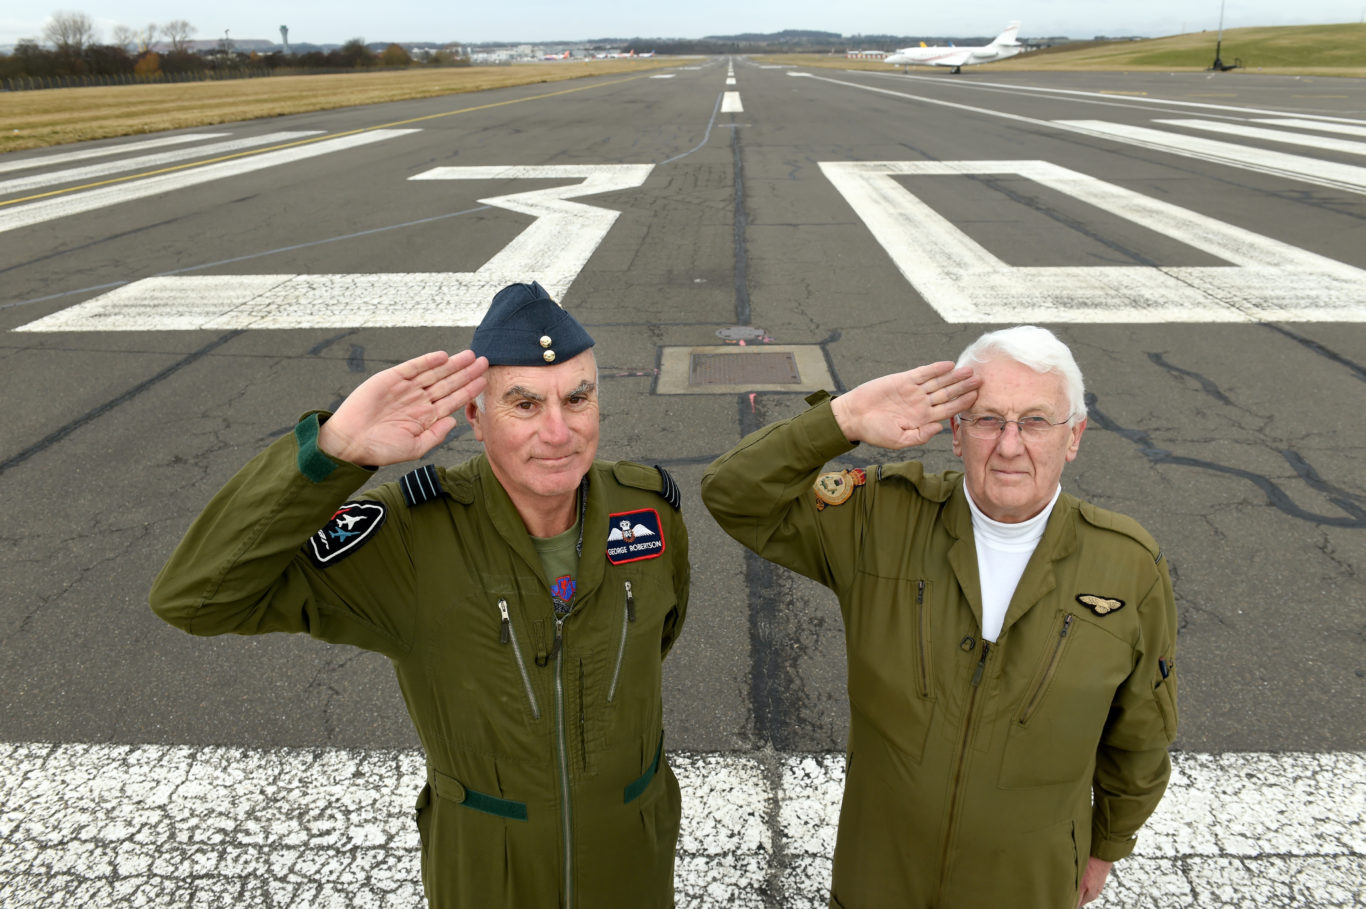 George Robertson (left) and Hamish MacLeod say the 12/30 runway holds special memories for them (Lesley Martin/PA)